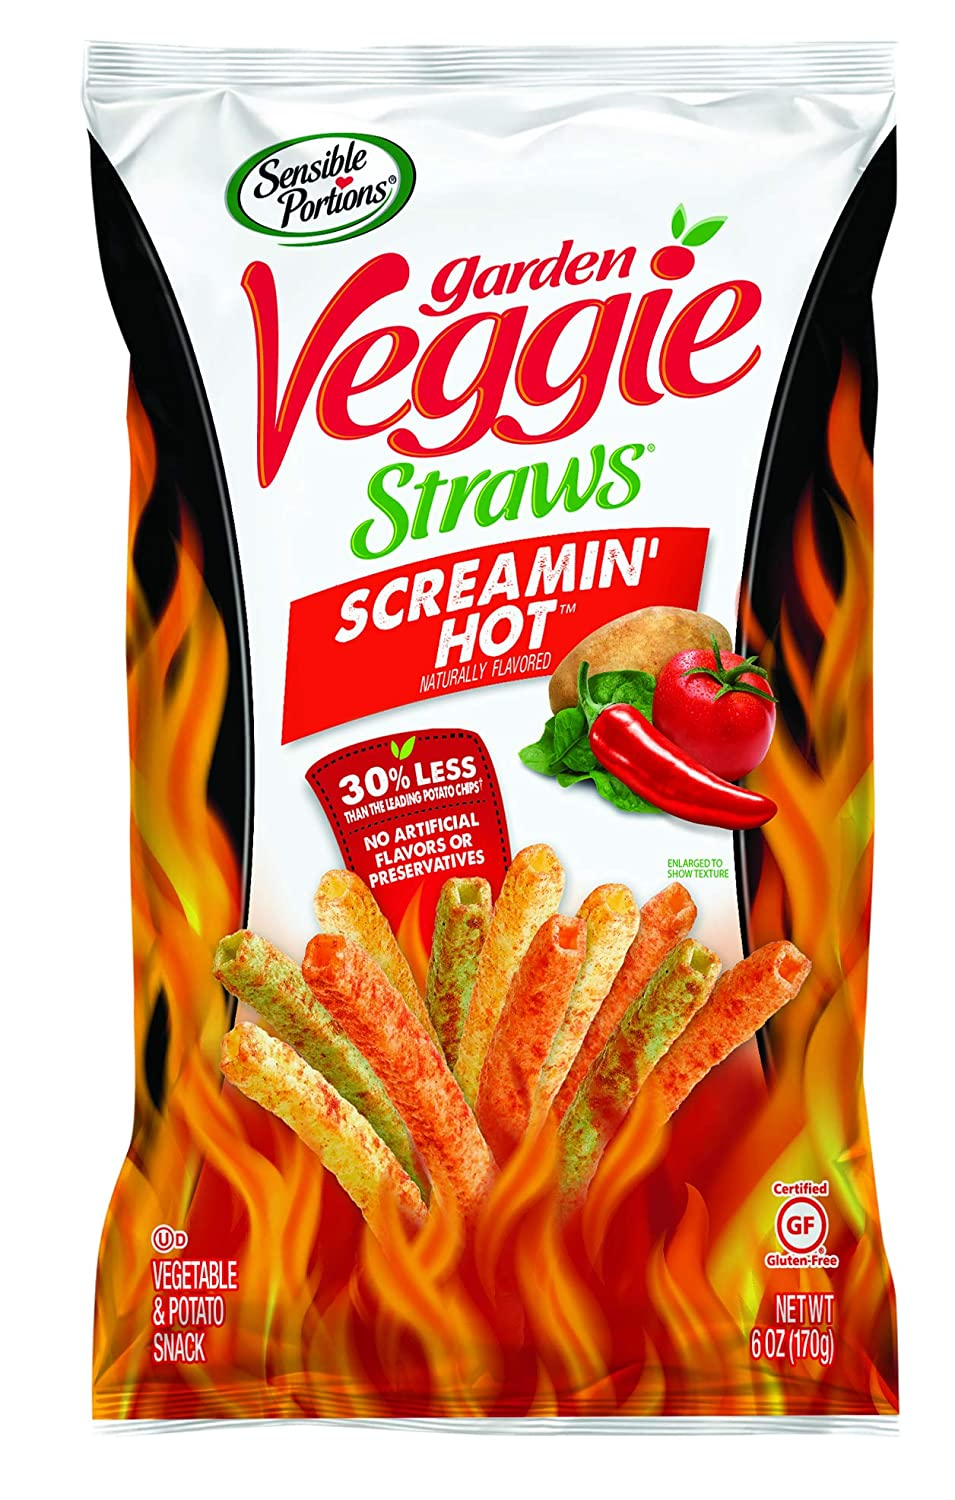 Sensible Portions Garden Veggie Straws Screamin' Hot, 6 Oz (Pack of 6)